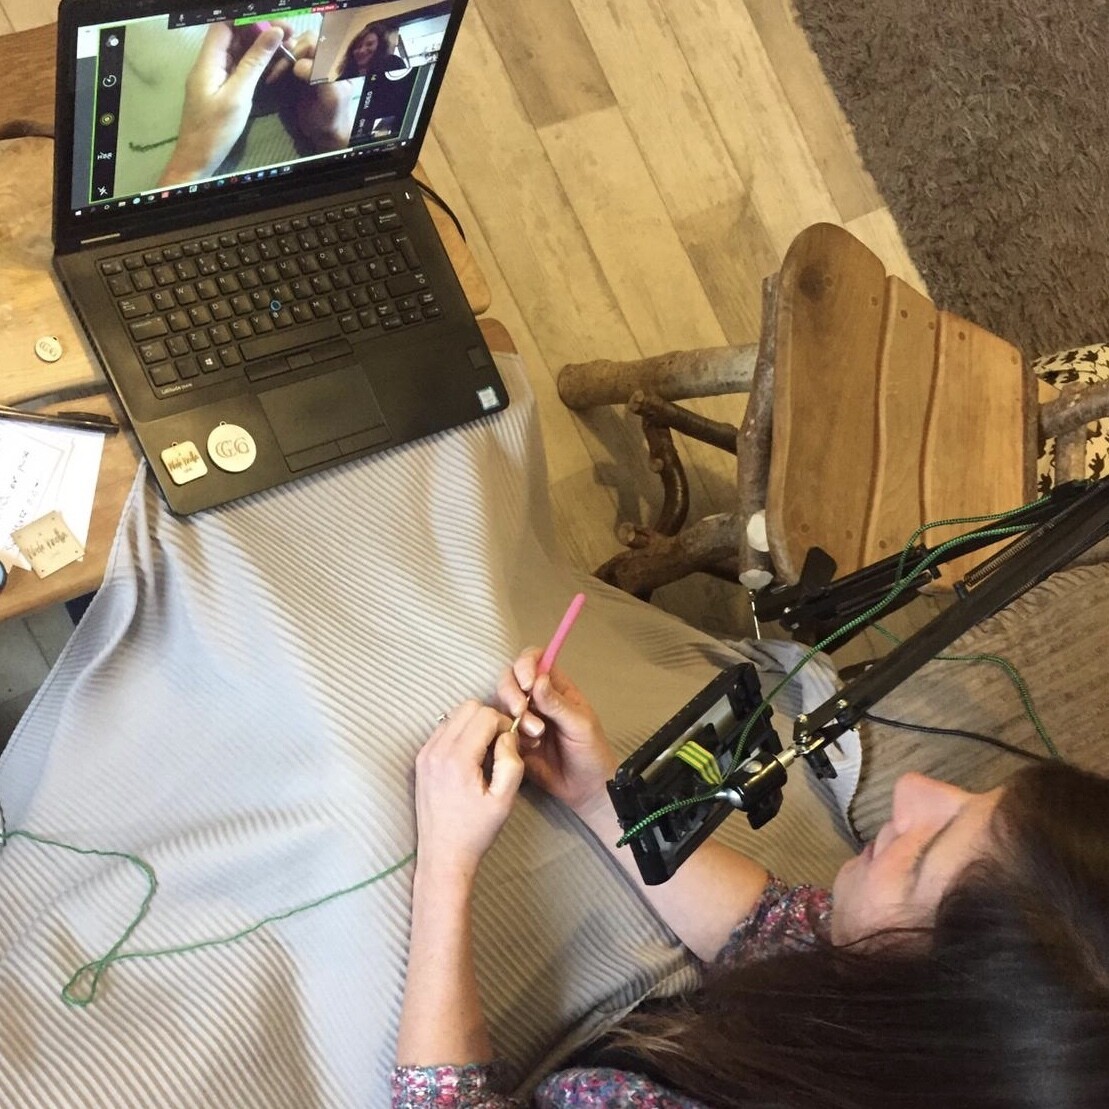 Crocheting Course Learn at Home Live with Rachel